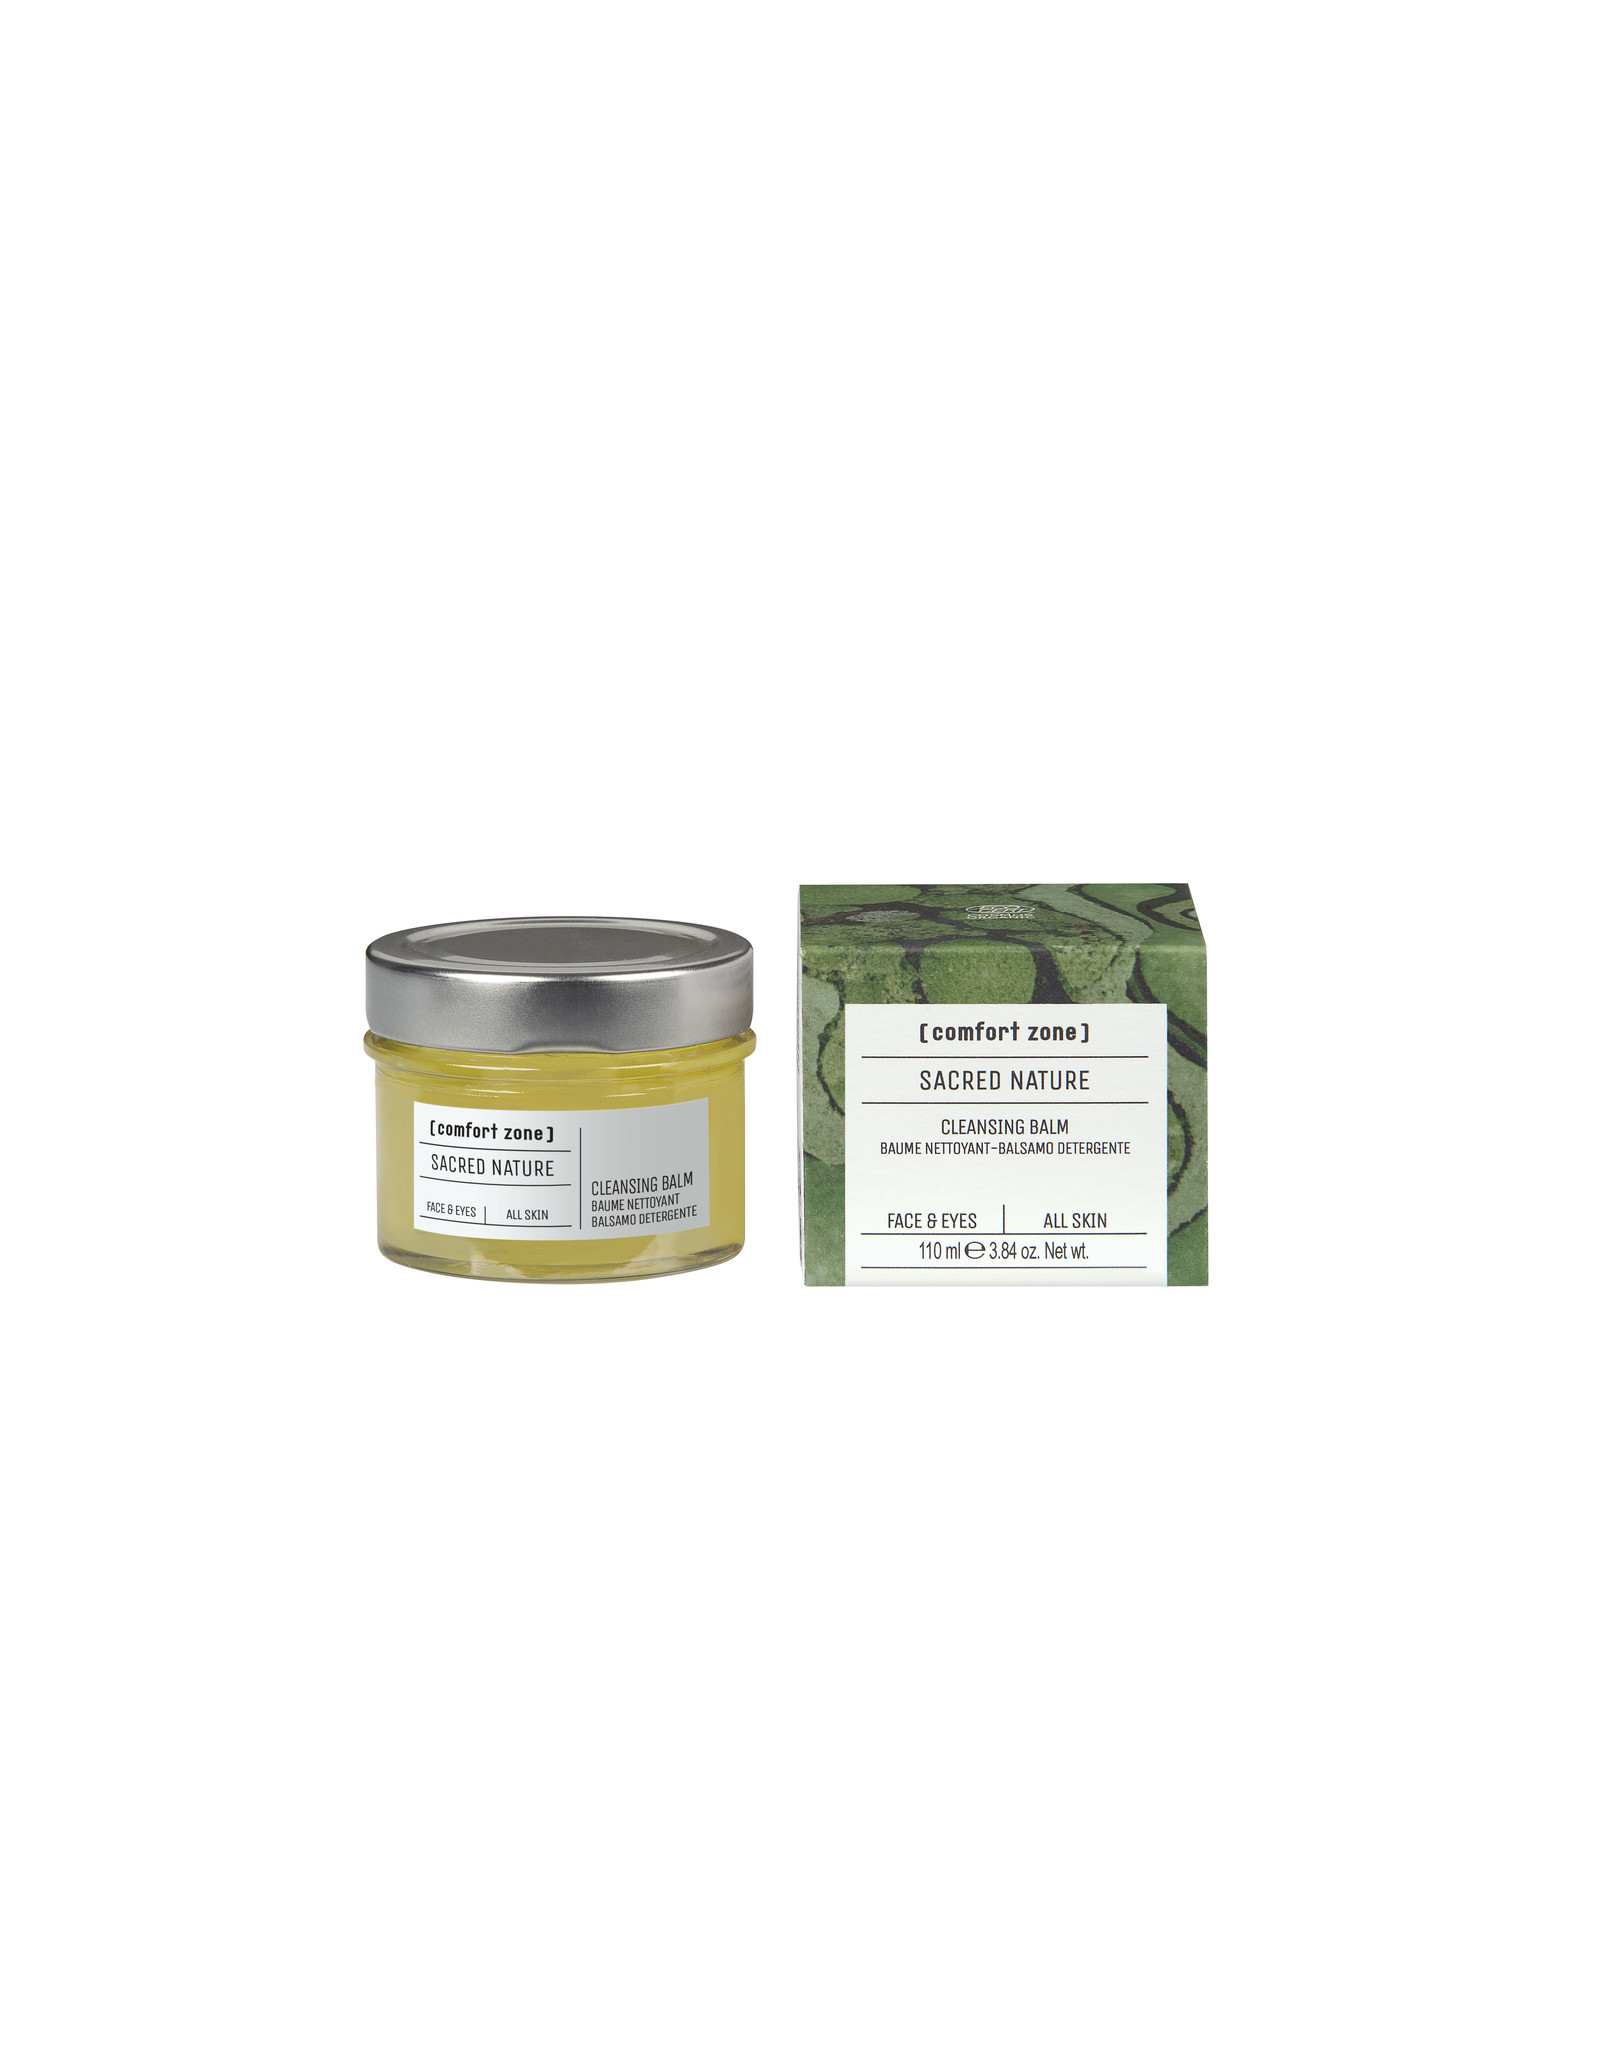 [Comfort Zone] Sacred Nature Cleansing Balm Pot 110 ml